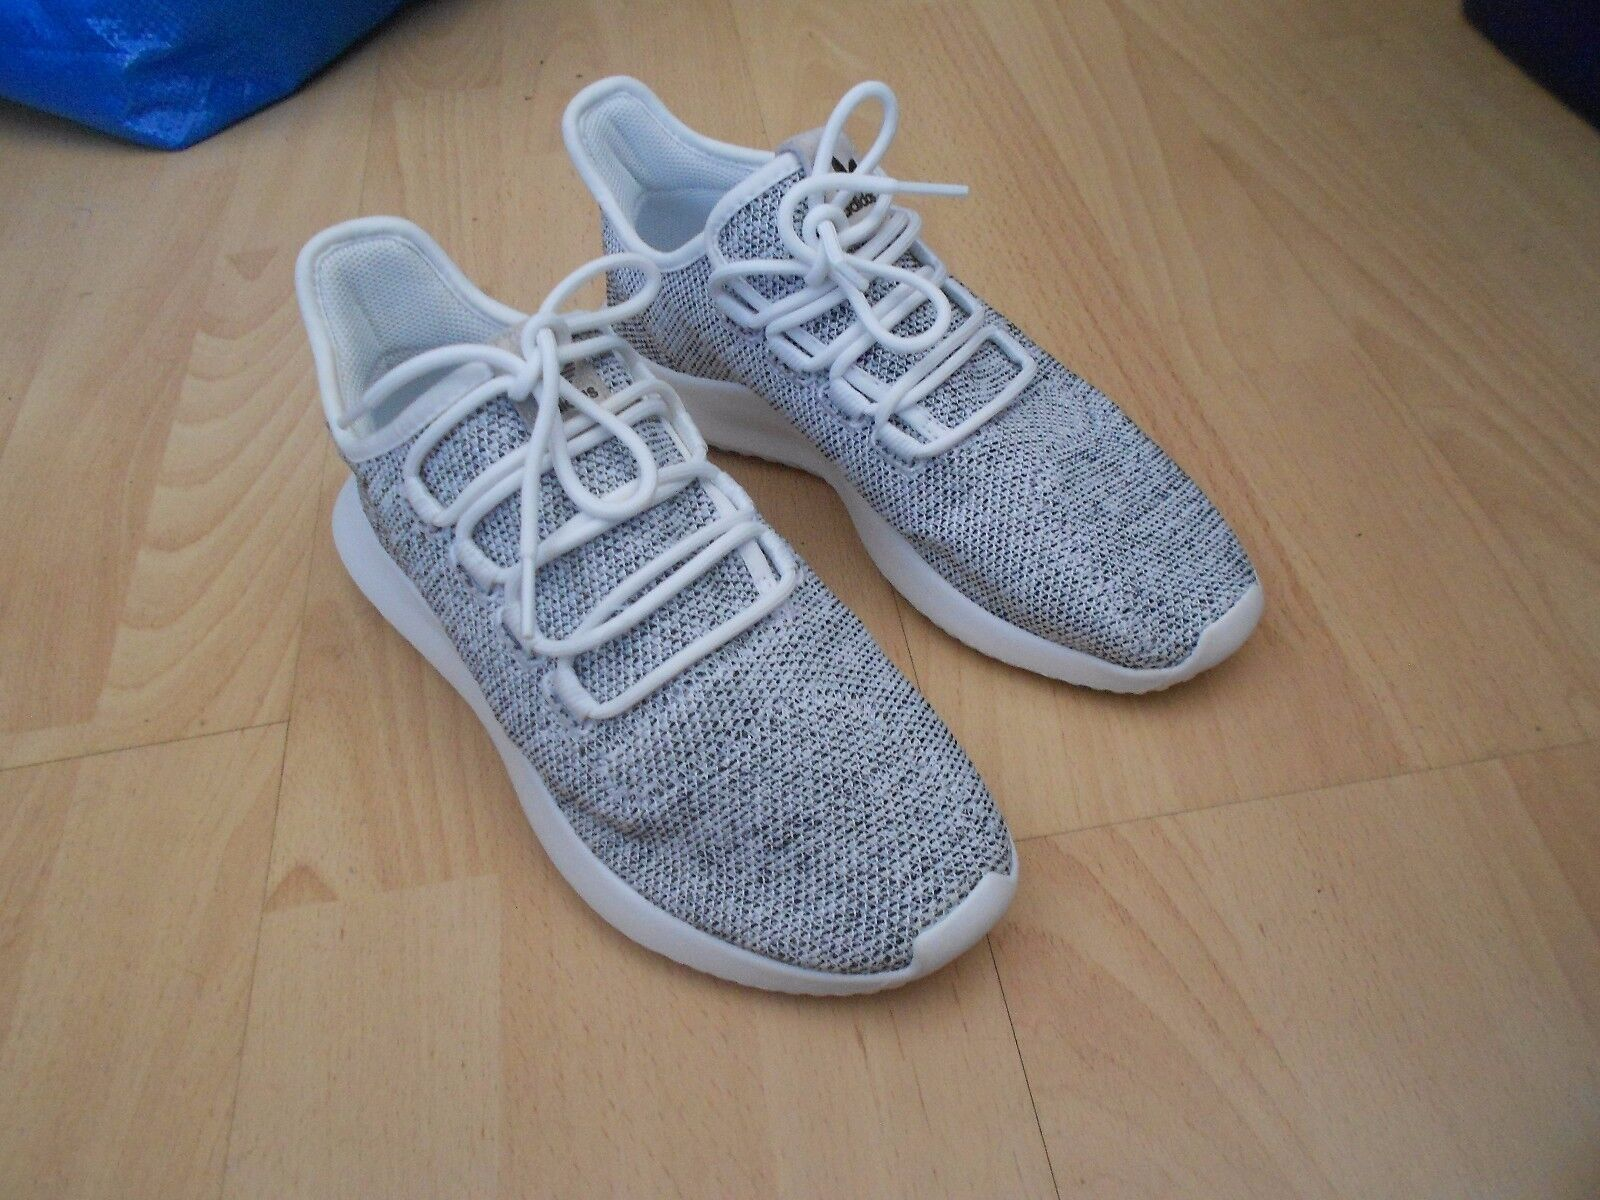 ADIDAS ORIGINALS TUBULAR SHADOW KNIT  TRAINERS UK SIZE 5.5 - IN VGC